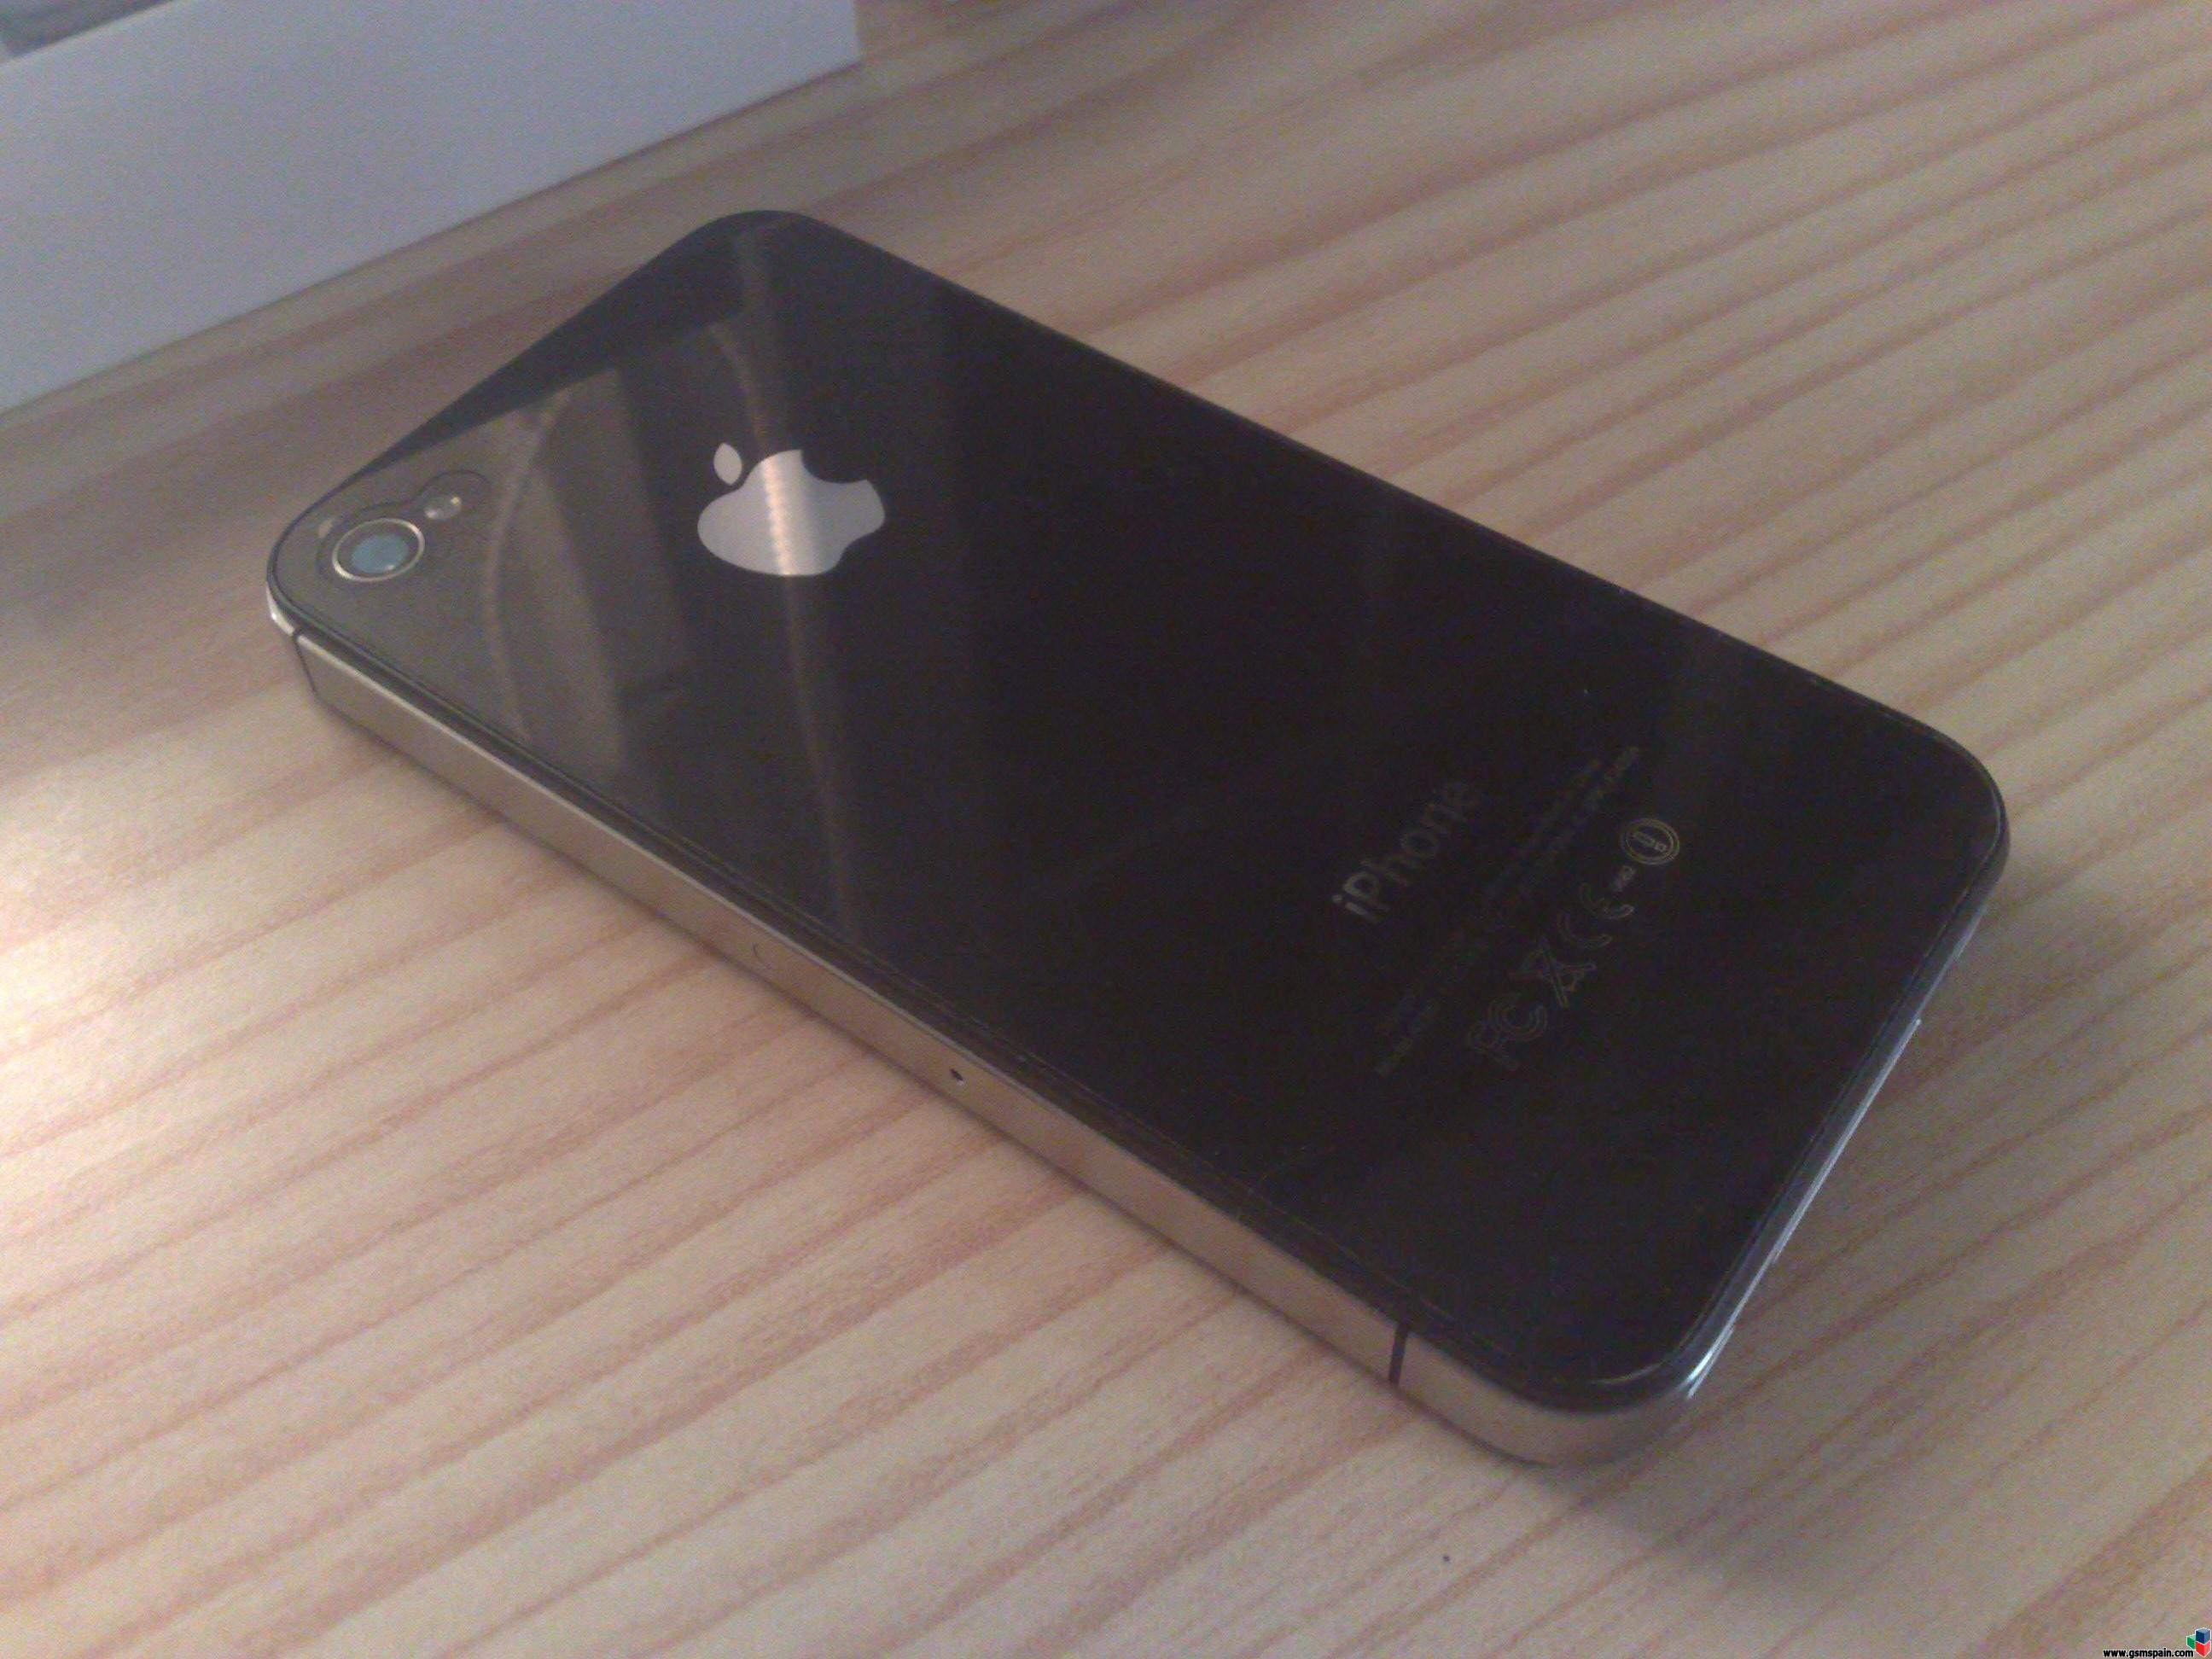 Iphone 4s 16gb Libre Vendo Iphone 4s 16gb Negro Libre